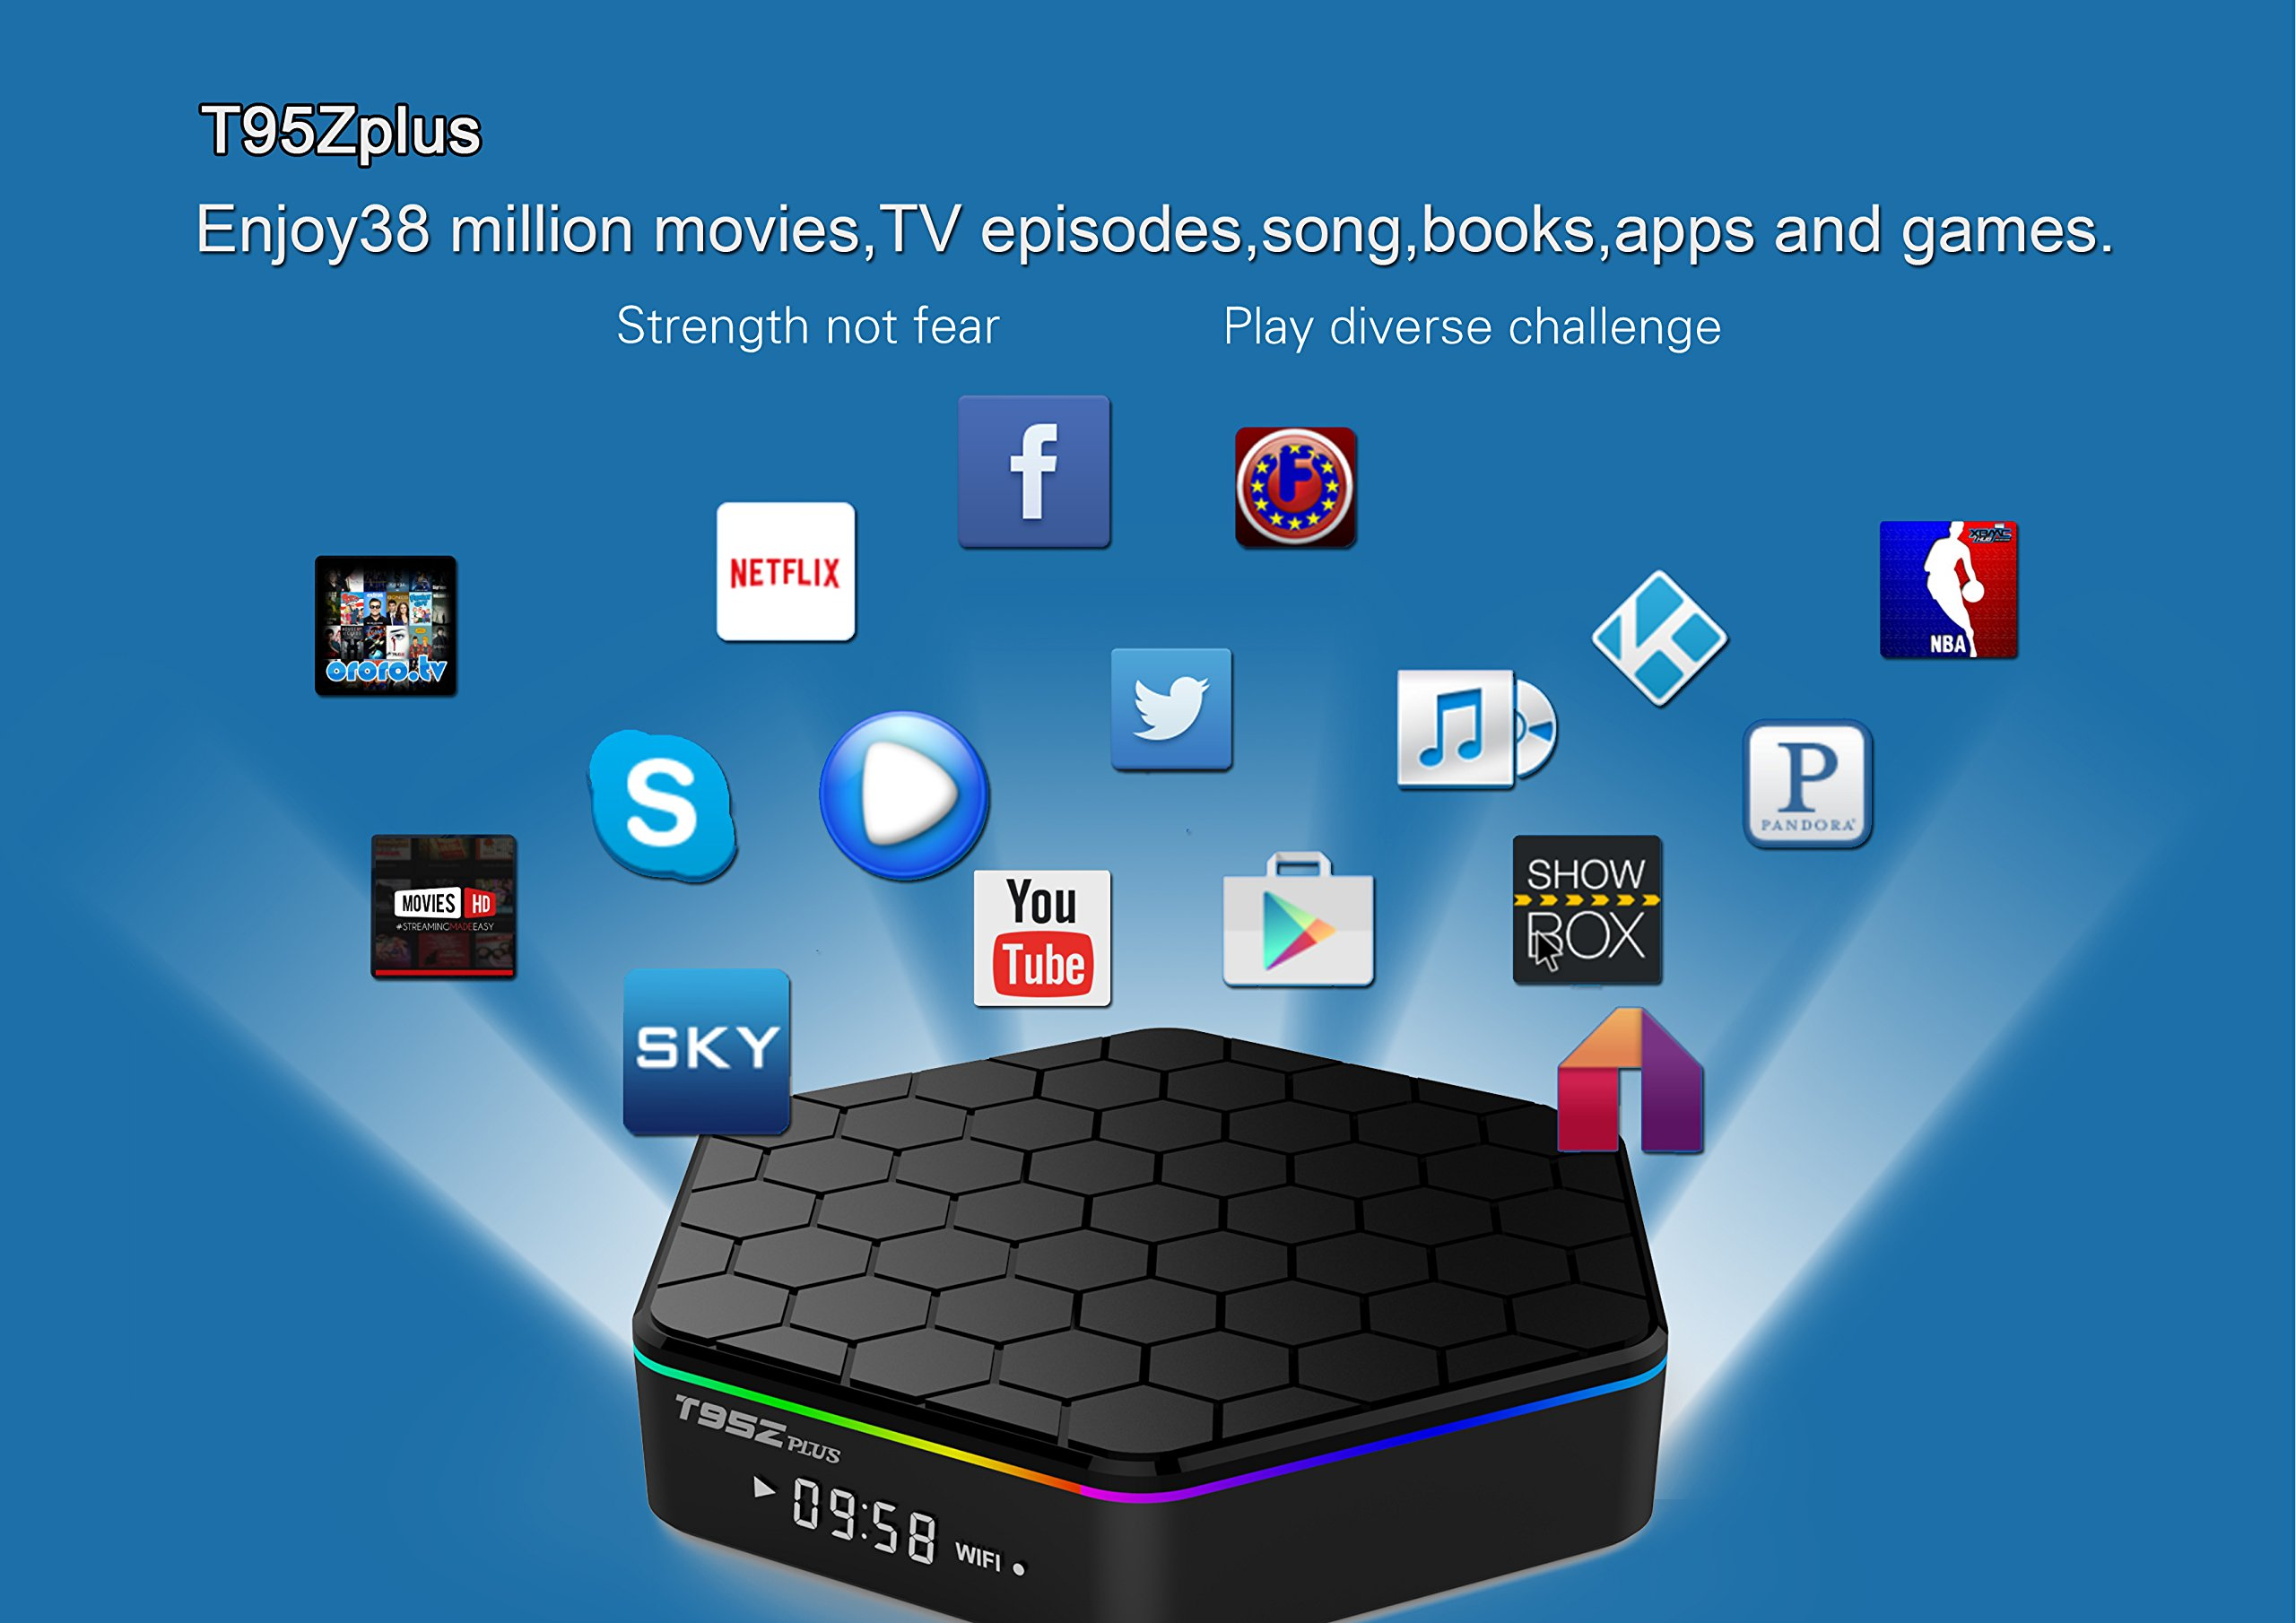 2018 High Configuration SeekEdge Android TV Box with 64Bit Amlogic S912 8-core CPU 2GB Ram+16GB ROM EMMC and Supporting 4K (60Hz) Full HD/H.265/2.4G+5G Dual-Band WiFi/1000M LAN